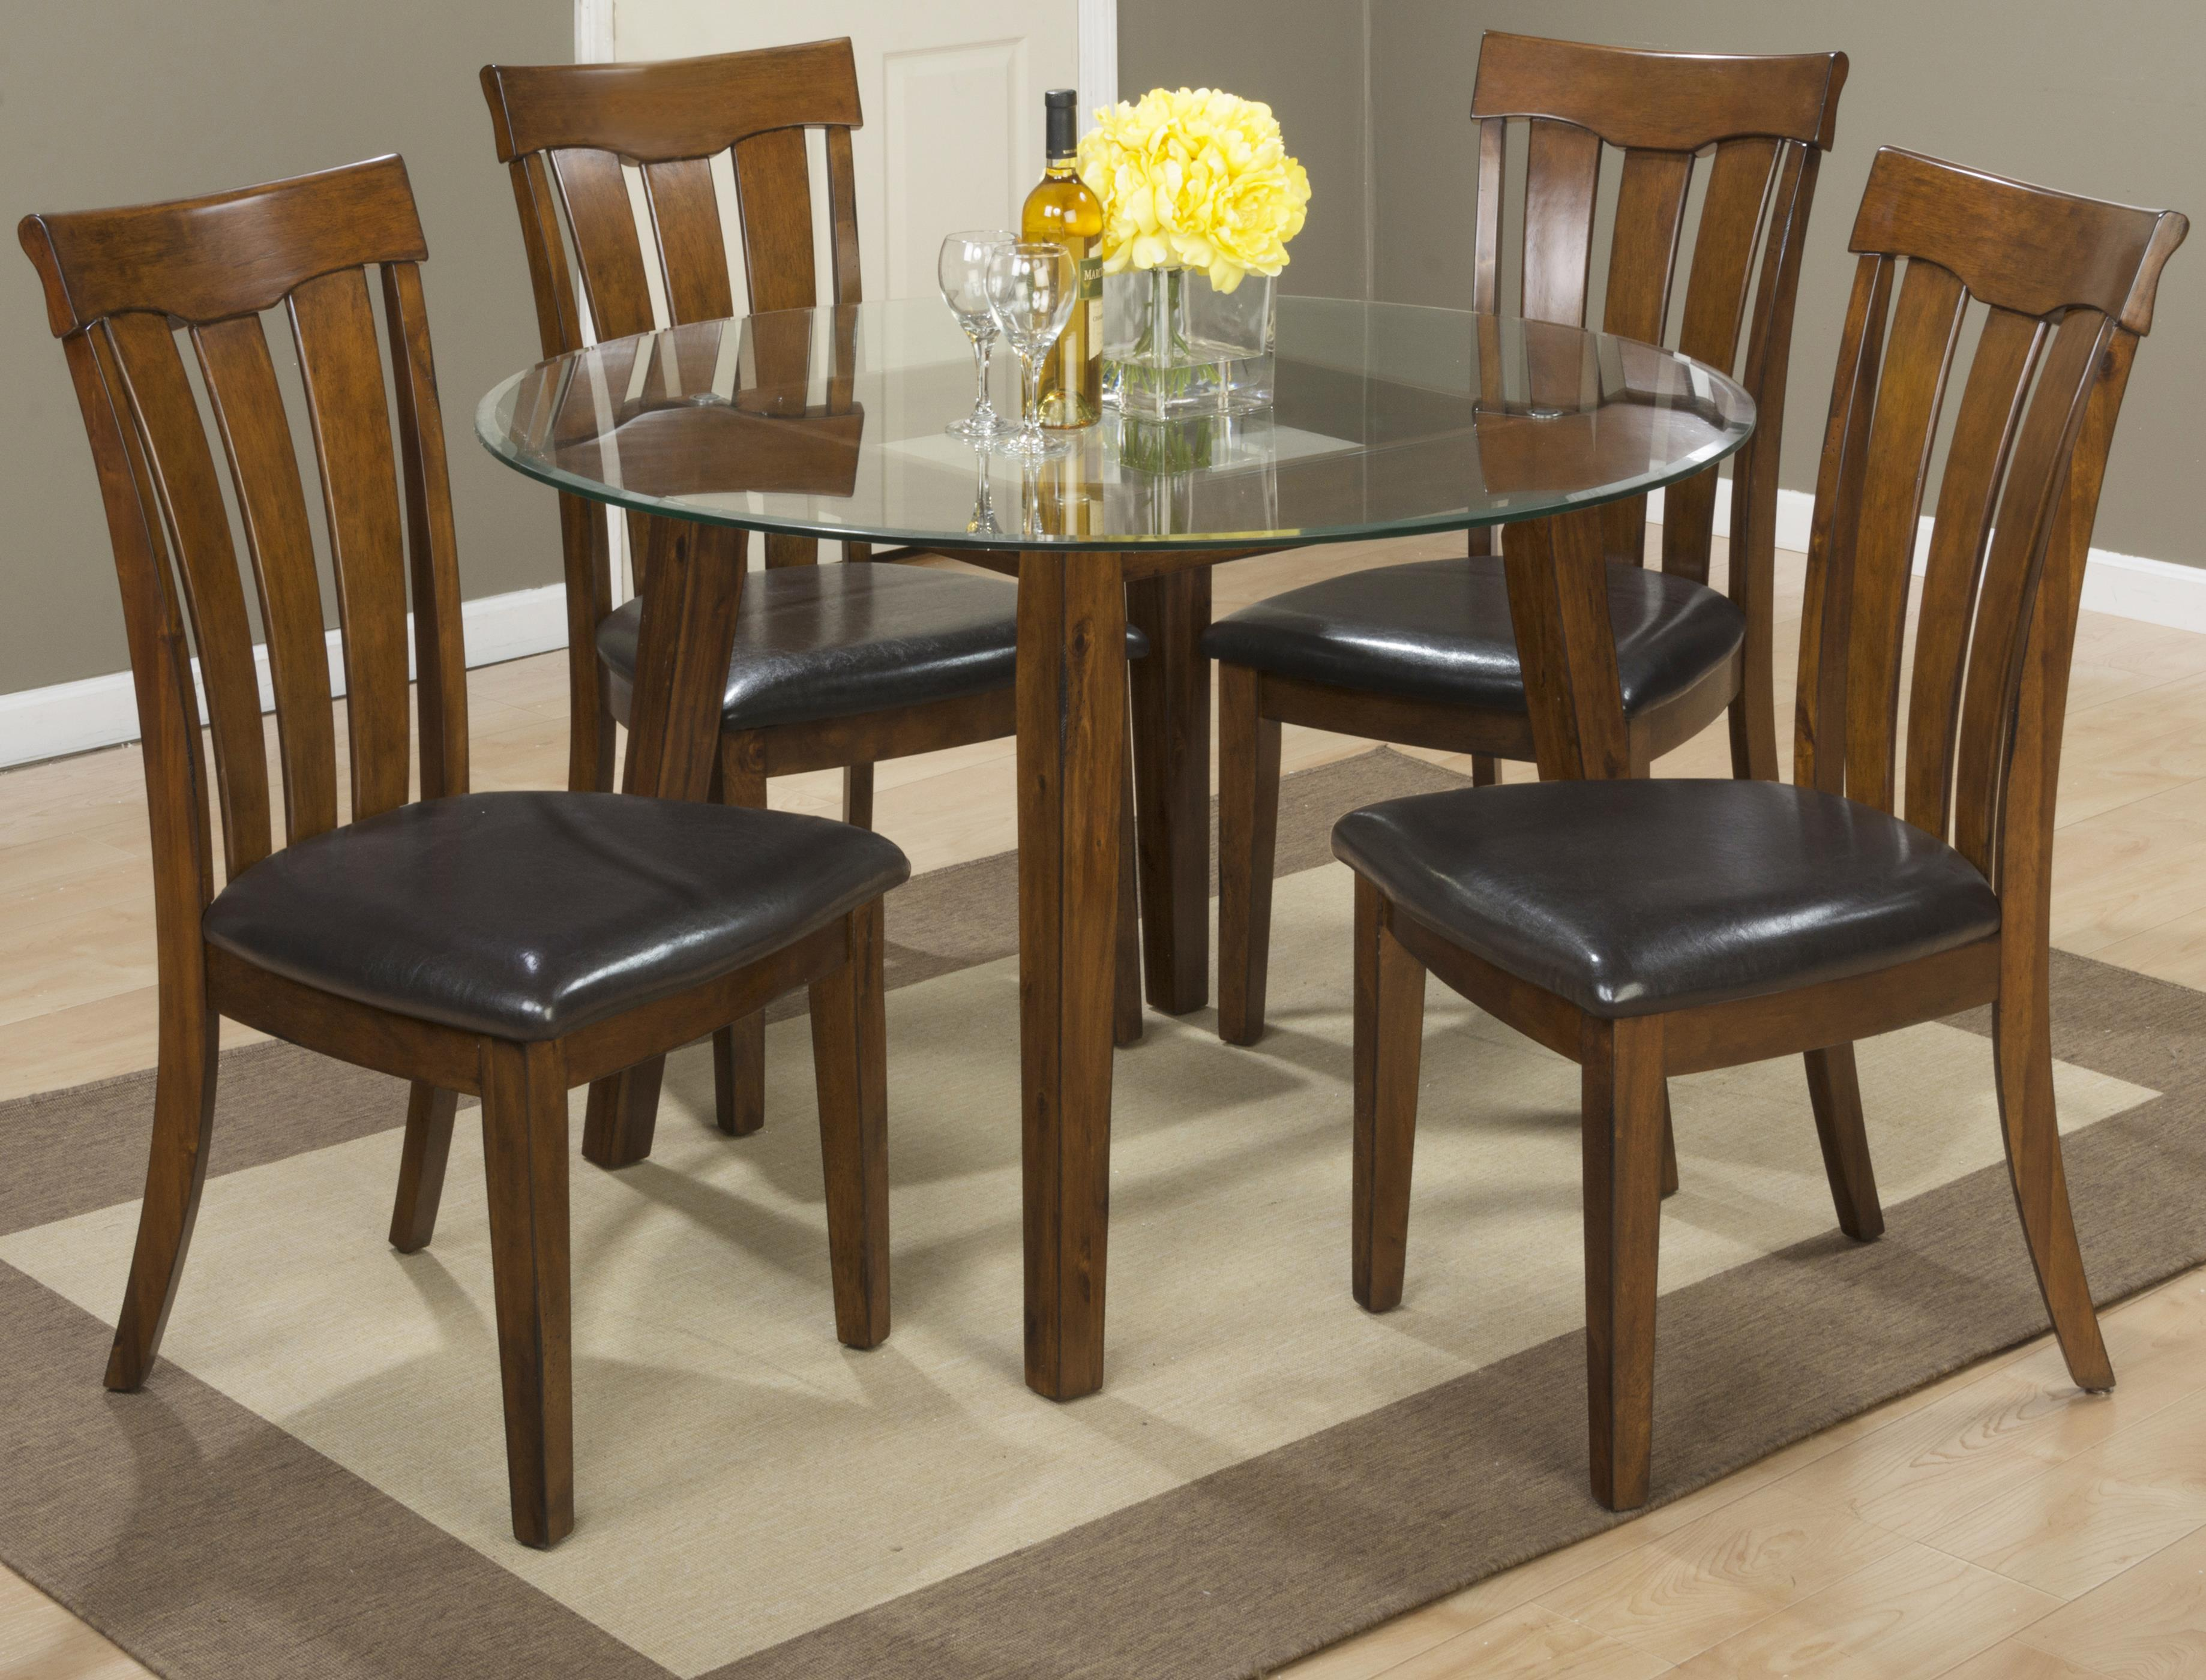 "Jofran Plantation 48"" Round Dining Height Table and Chair Set - Item Number: 505-48B+G-48RD+4x423KD"